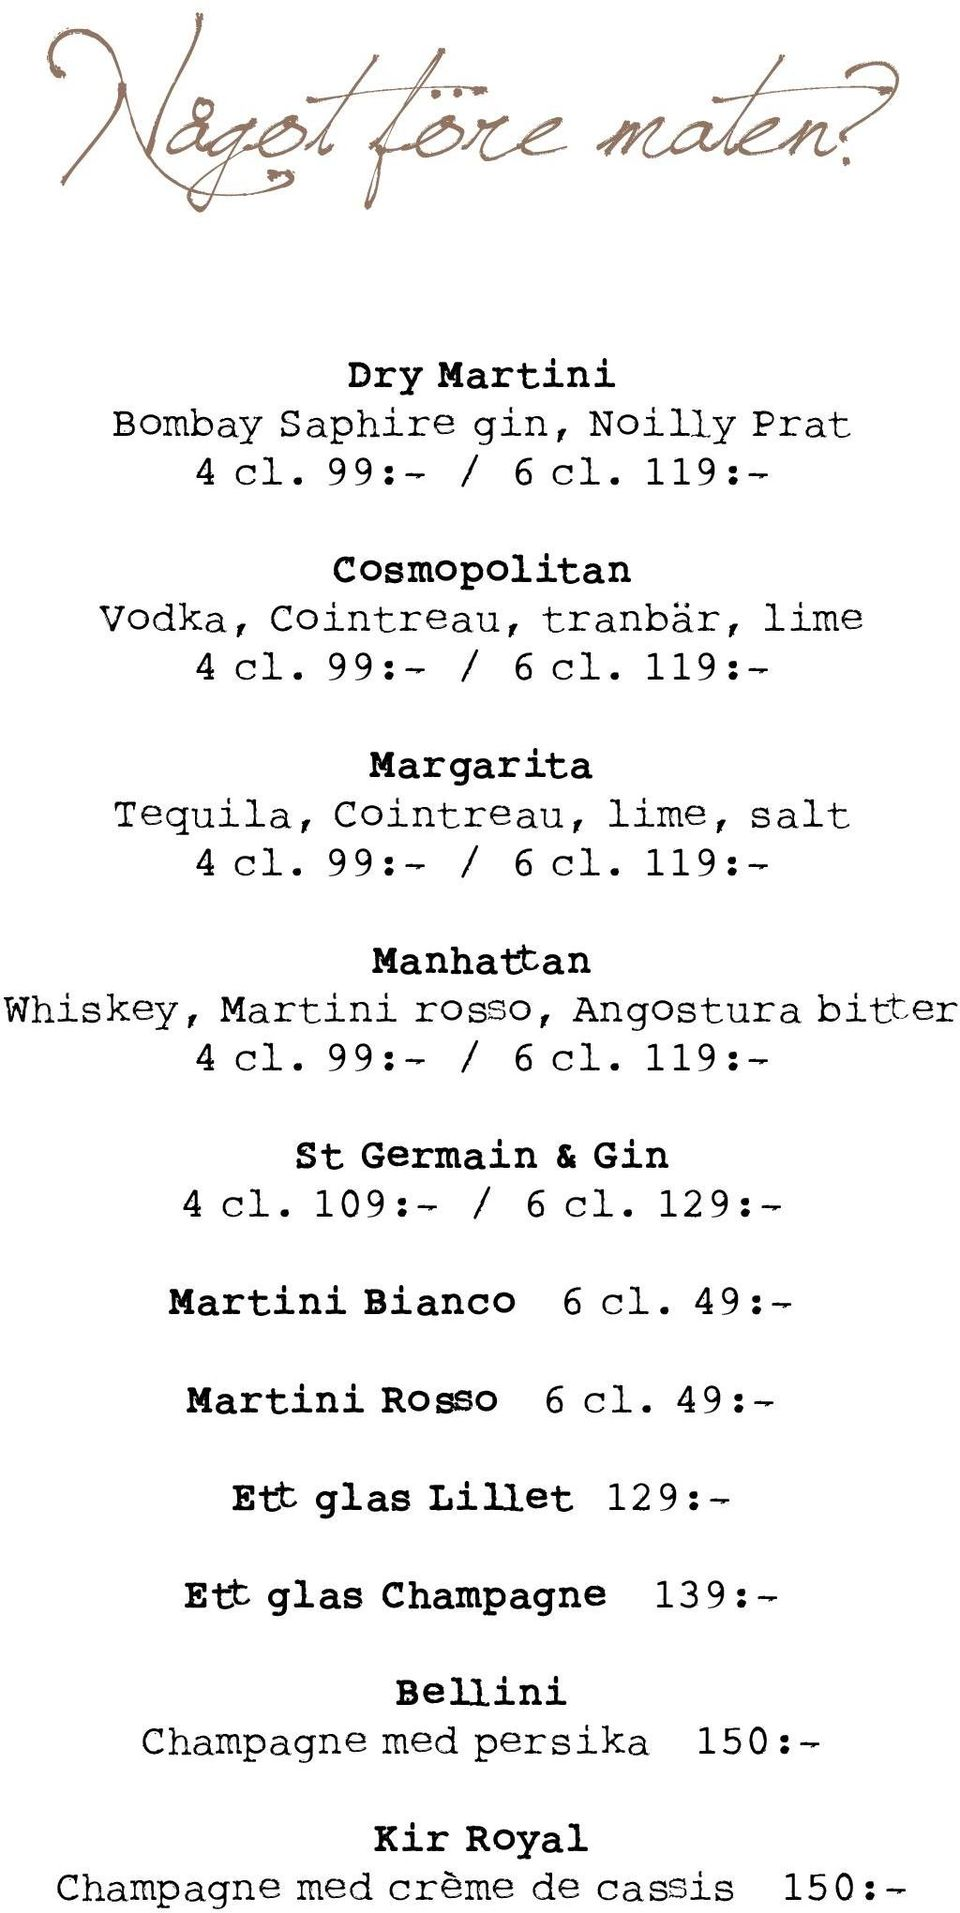 99:- / 6 cl. 119:- Manhattan Whiskey, Martini rosso, Angostura bitter 4 cl. 99:- / 6 cl. 119:- St Germain & Gin 4 cl. 109:- / 6 cl.